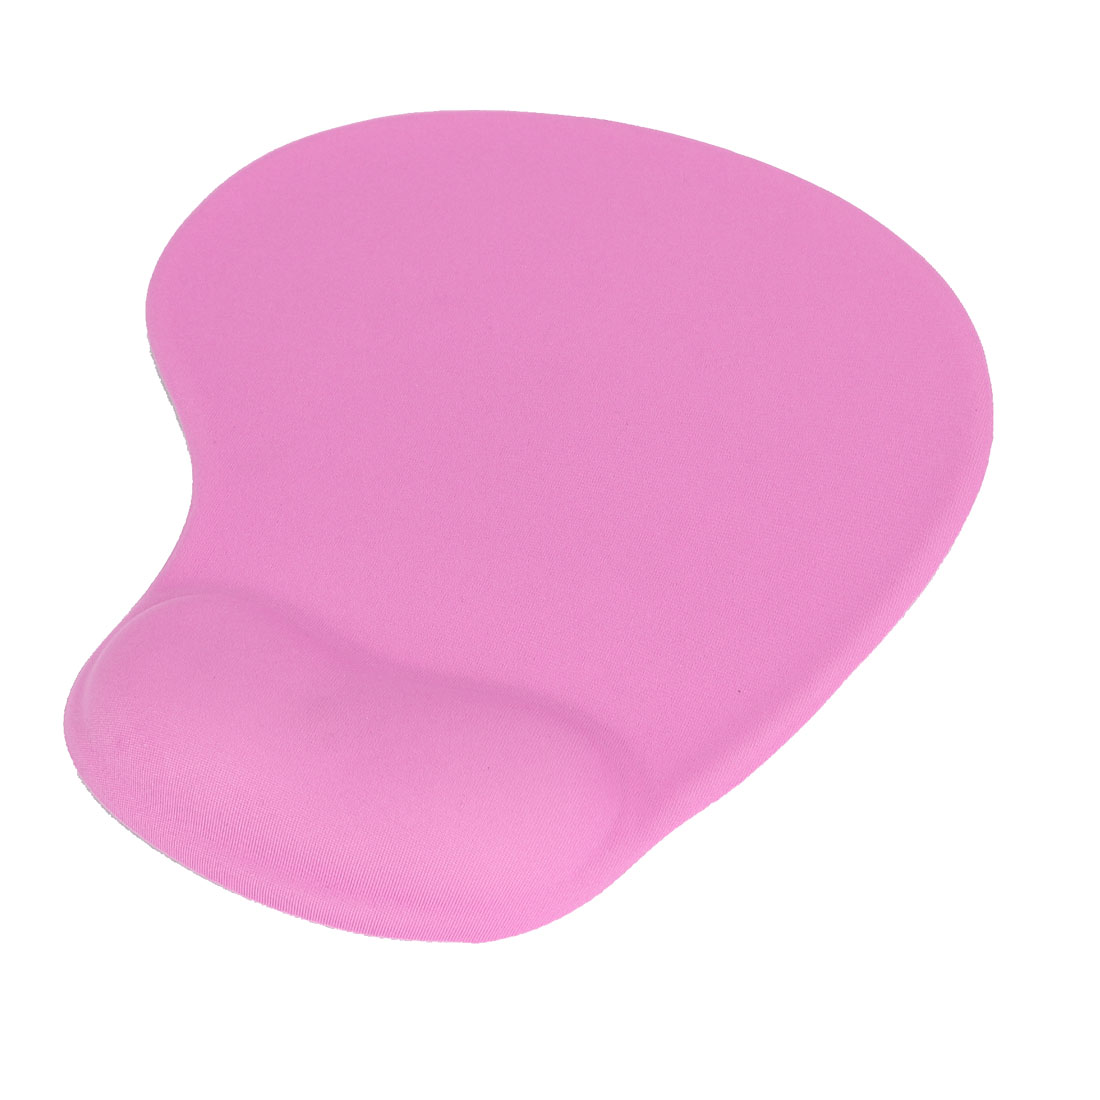 Pink Gel Wrist Support Mice Pad Mat Mousepad for PC Laptop Trackball Mouse